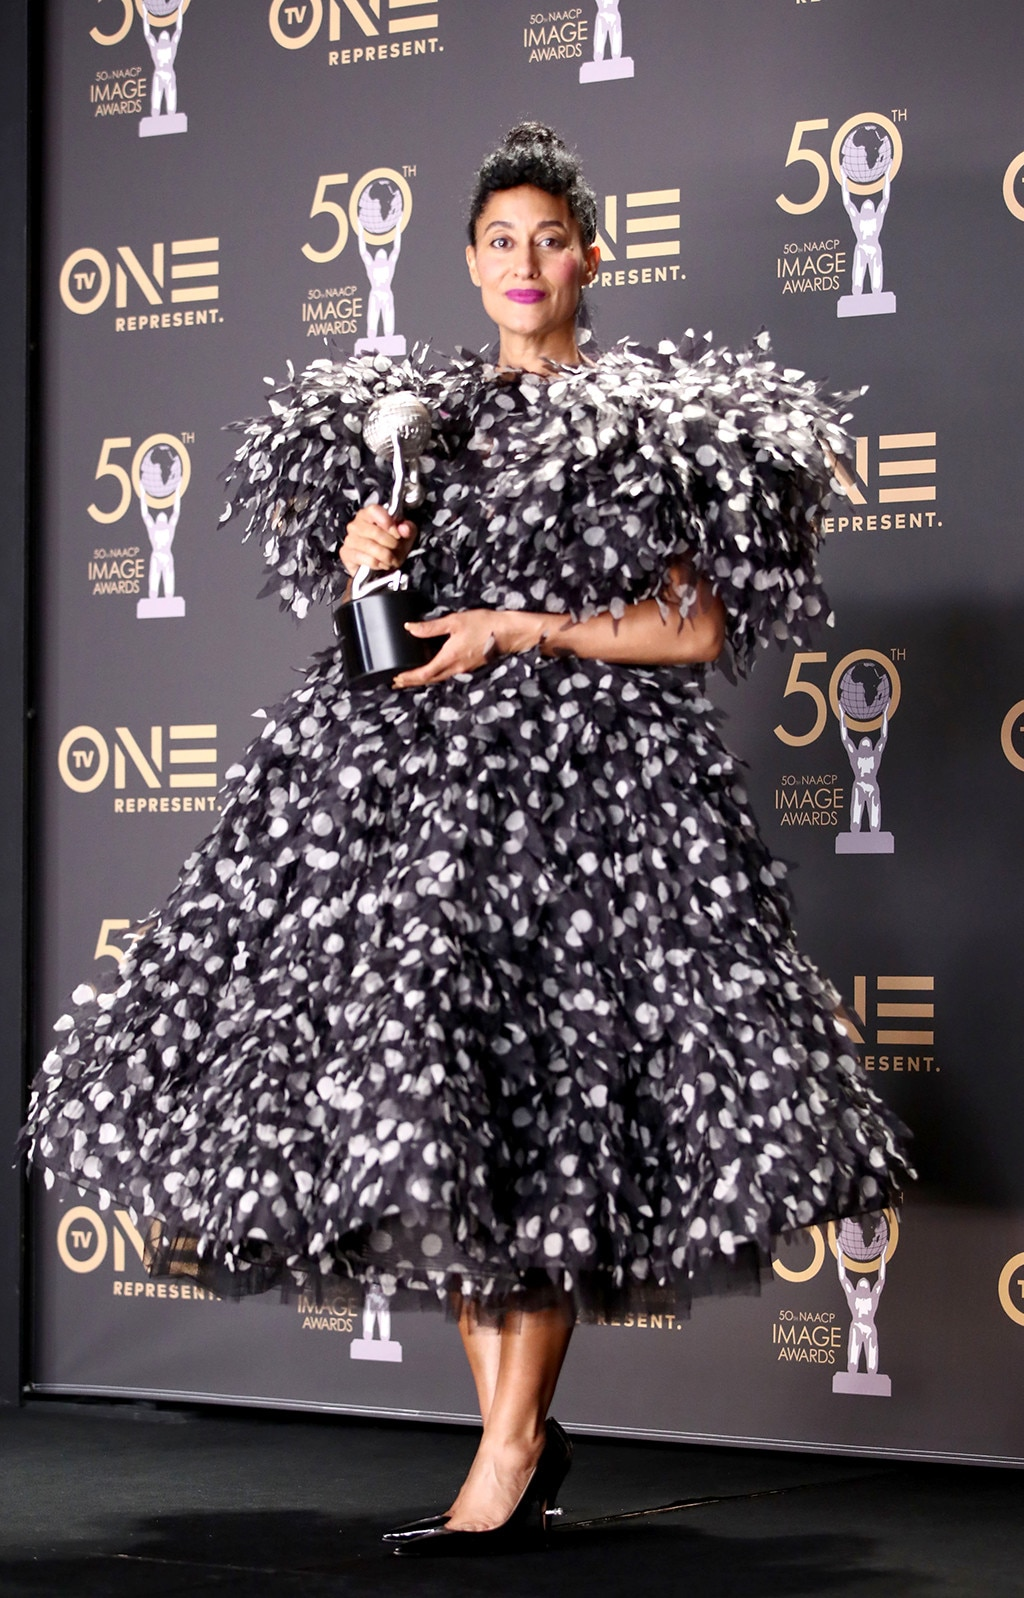 Winning look -  Tracee Ellis Ross, winner of Outstanding Actress in a Comedy Series, attends the 50th NAACP Image Awards at Dolby Theatre on March 30, 2019 in Hollywood, California.